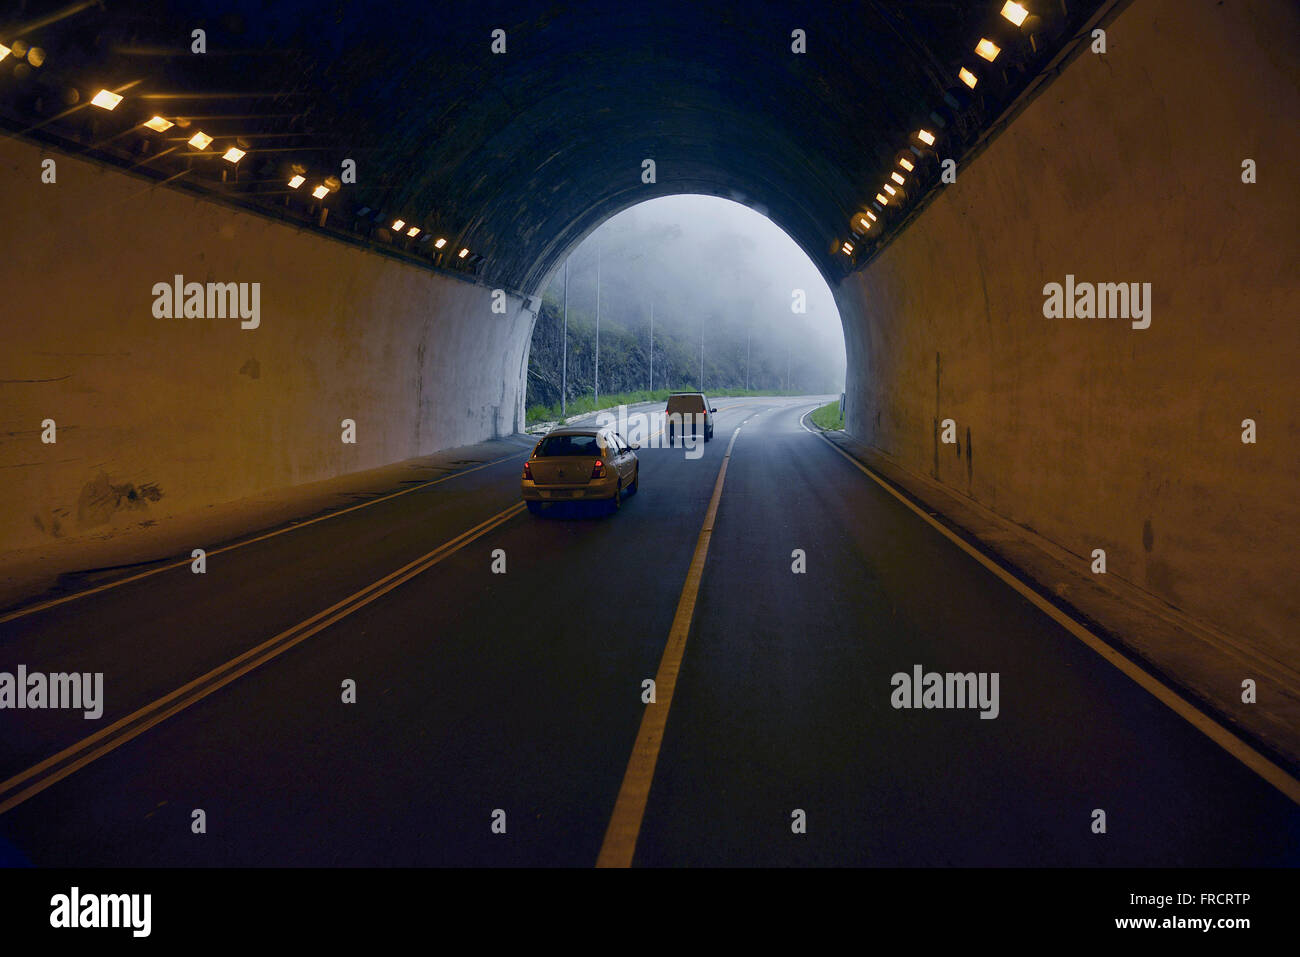 Tunnel SP-123 Highway Floriano Rodrigues Pinheiro - Stock Image